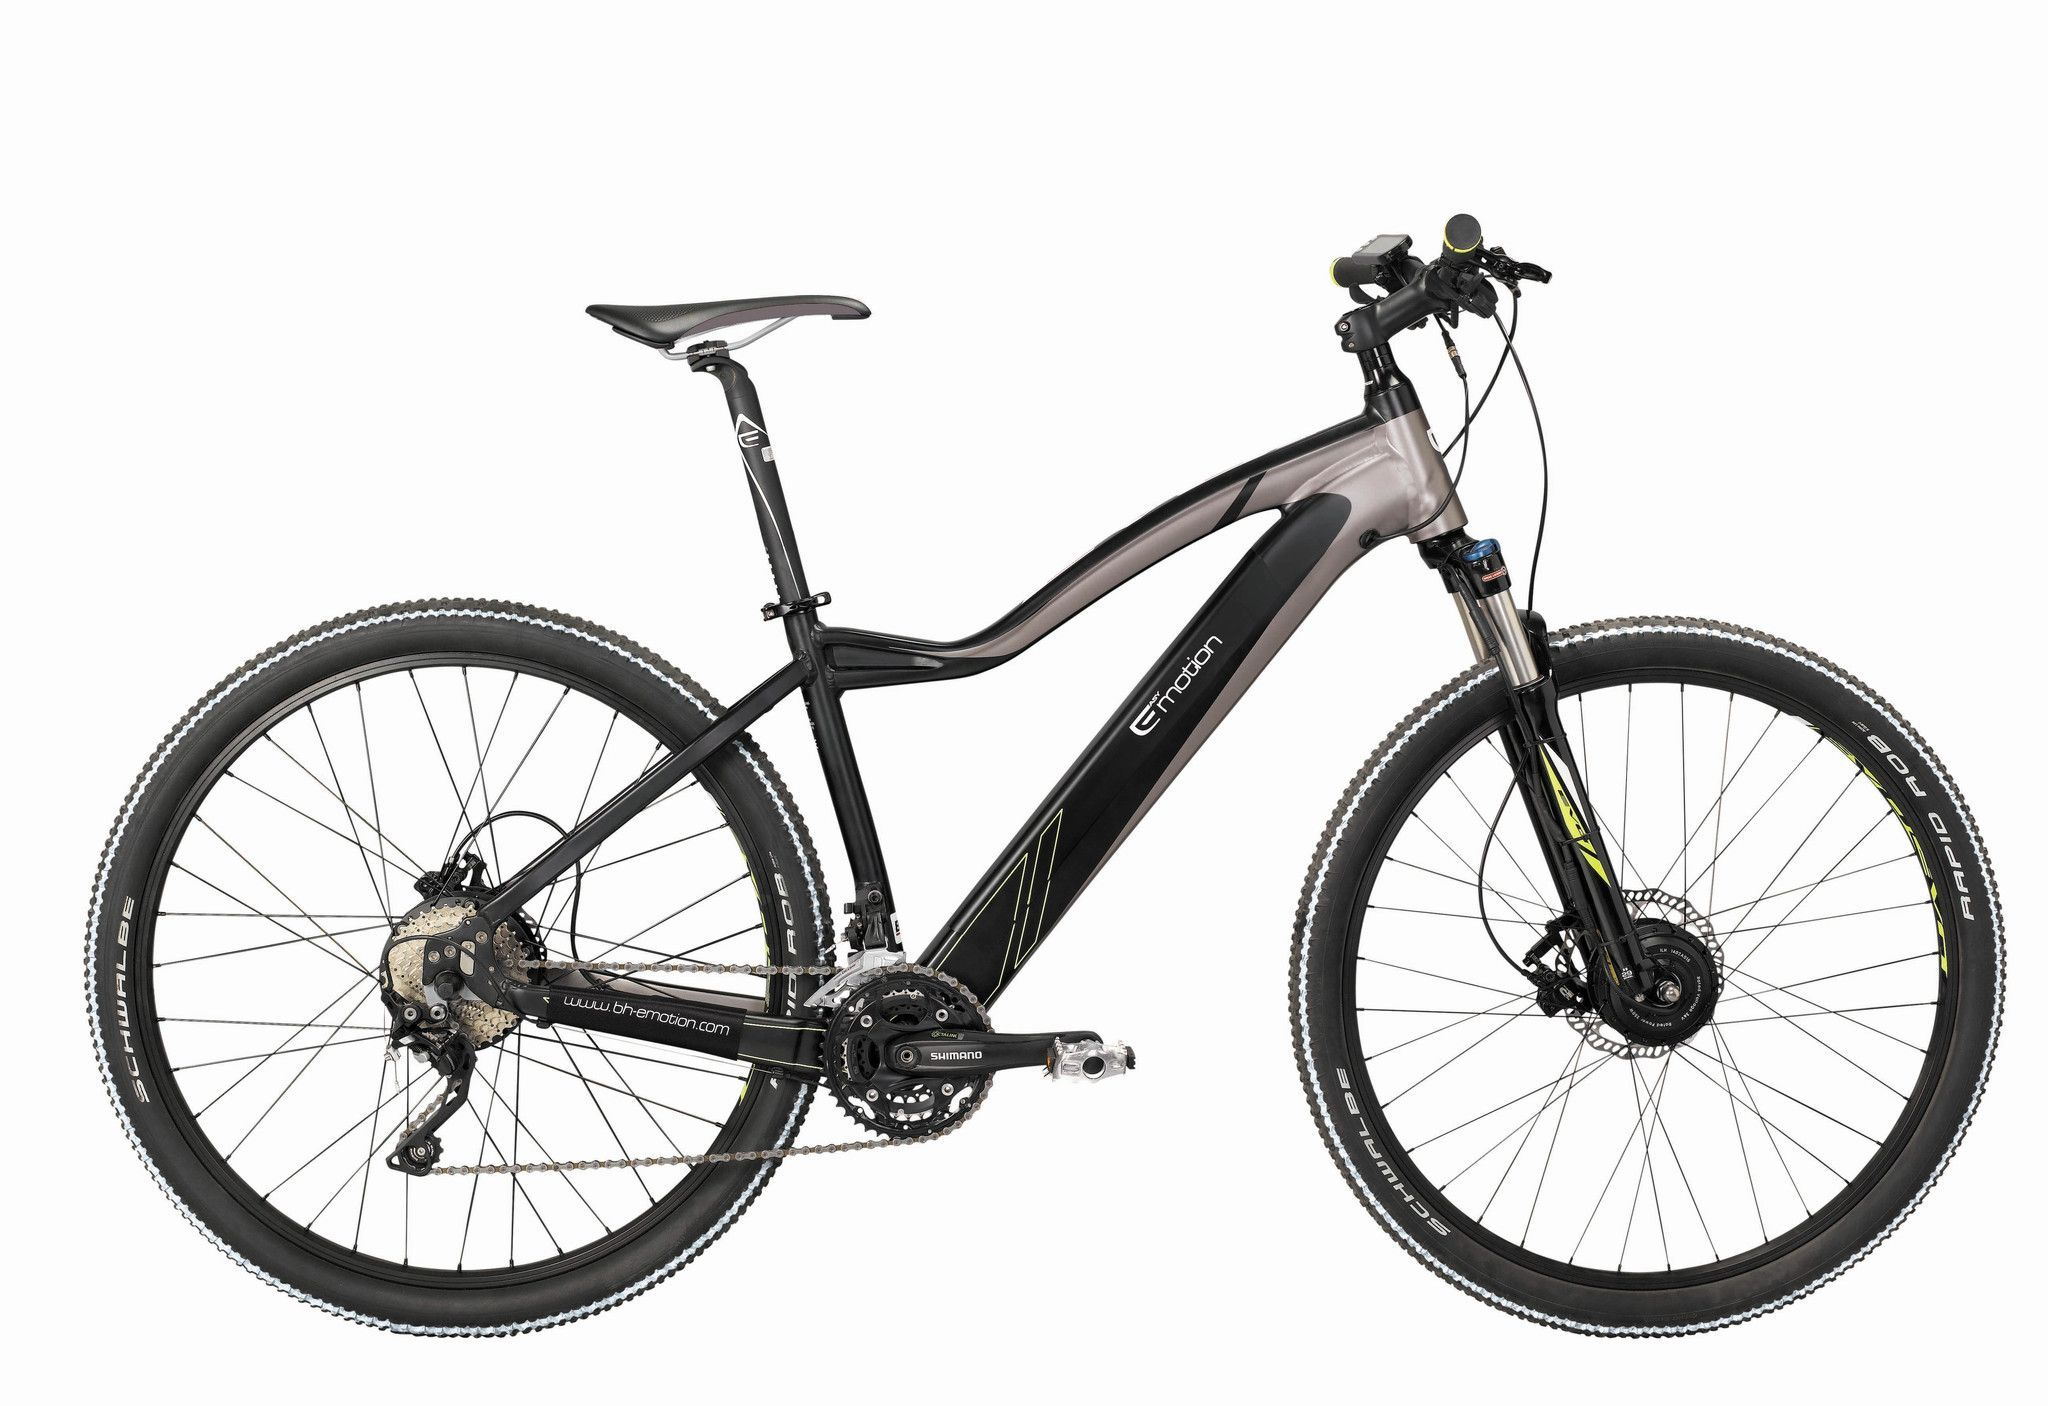 Evo 600w Snow 29 Quot Pro Electric Mountain Bike By Bh Easy